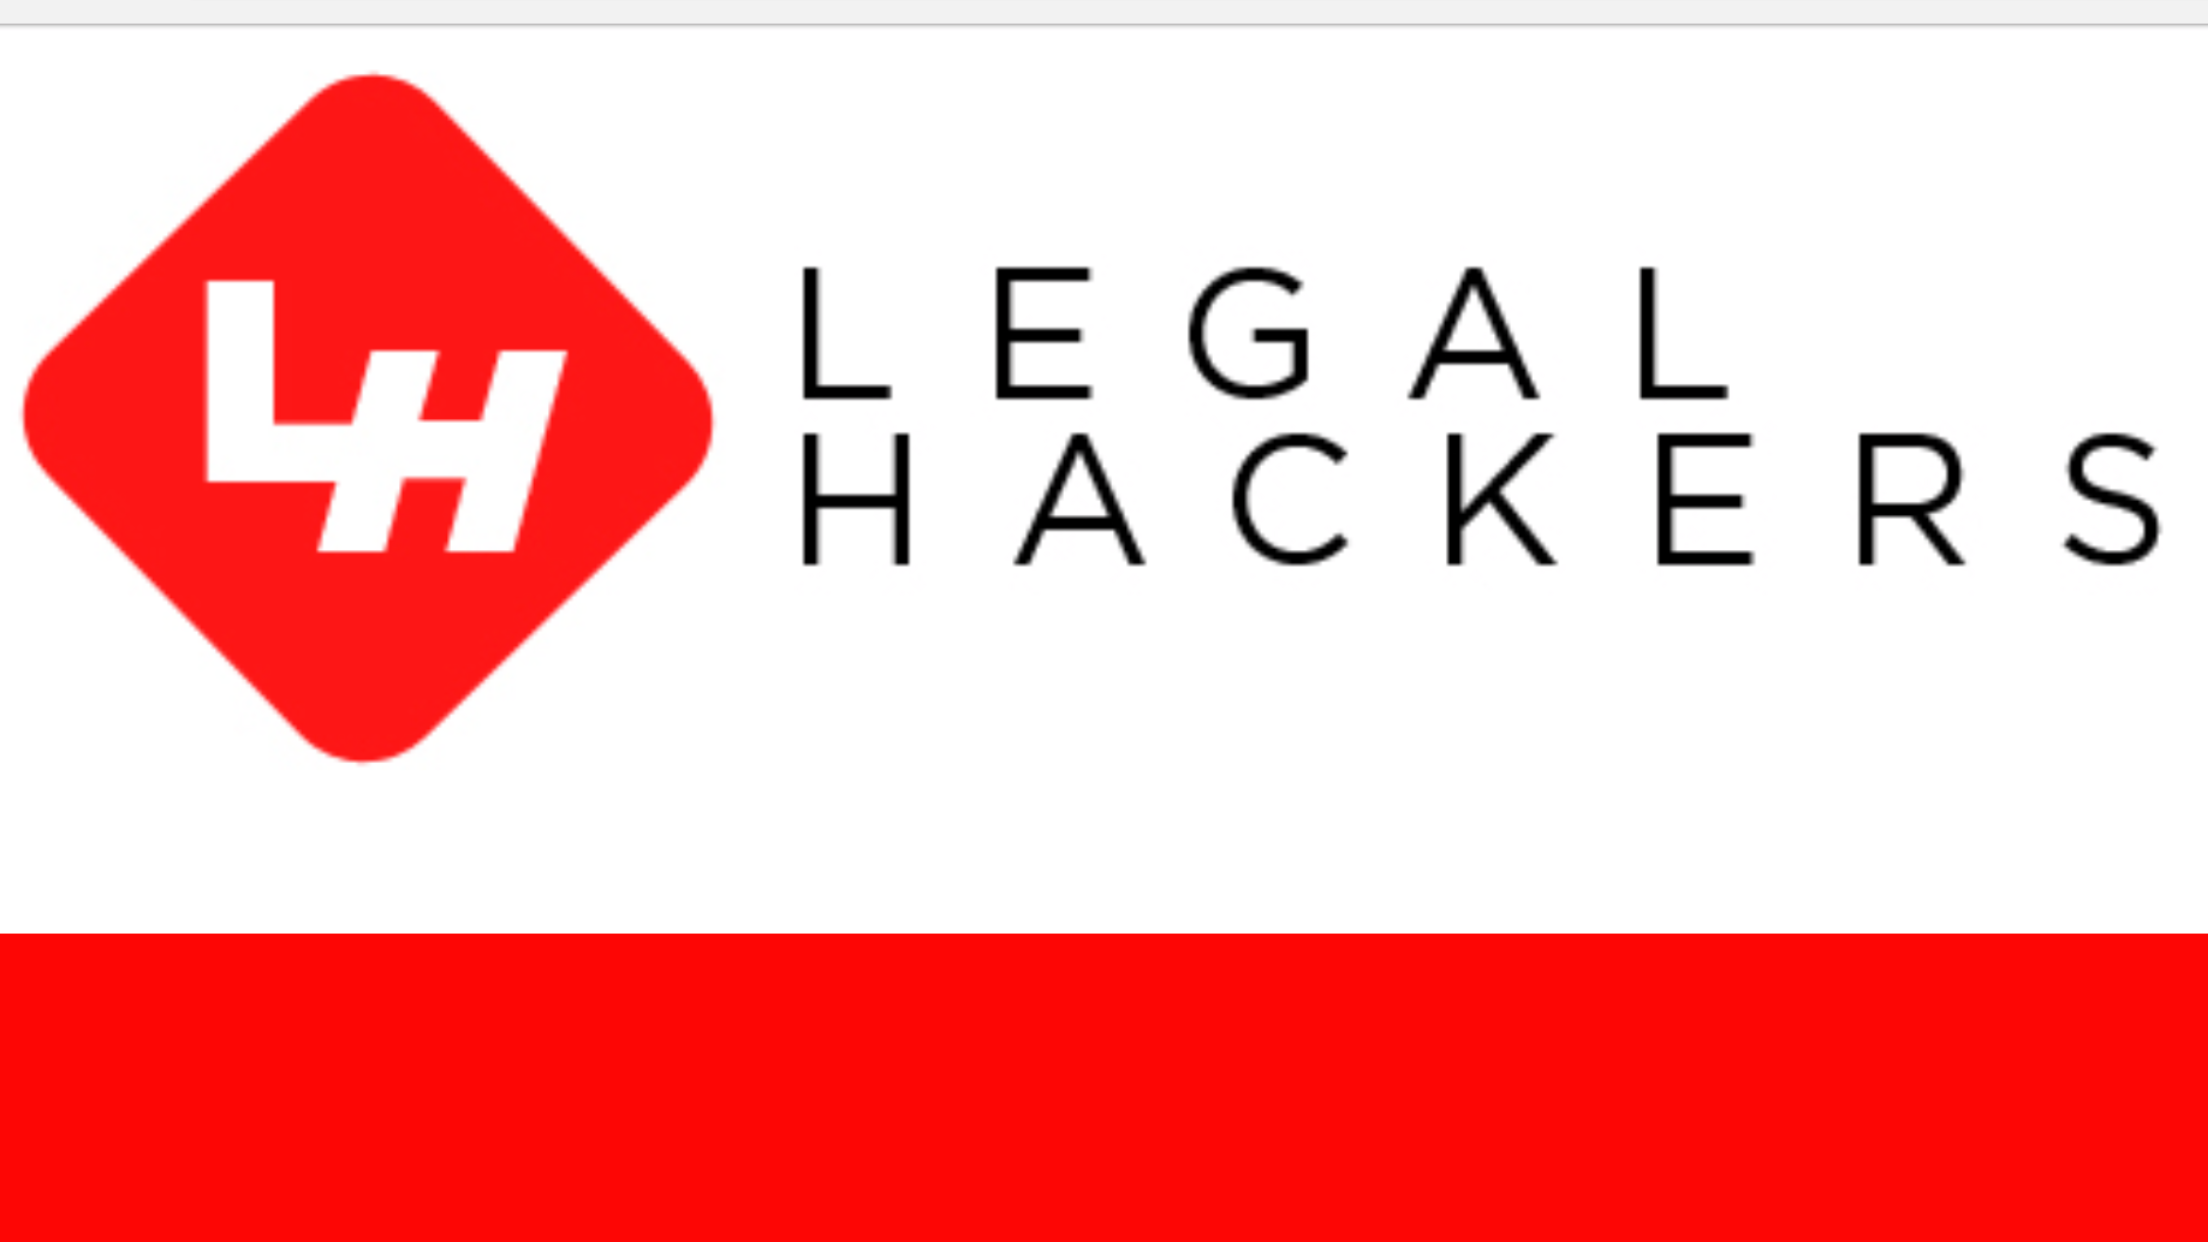 Boston Legal Hackers